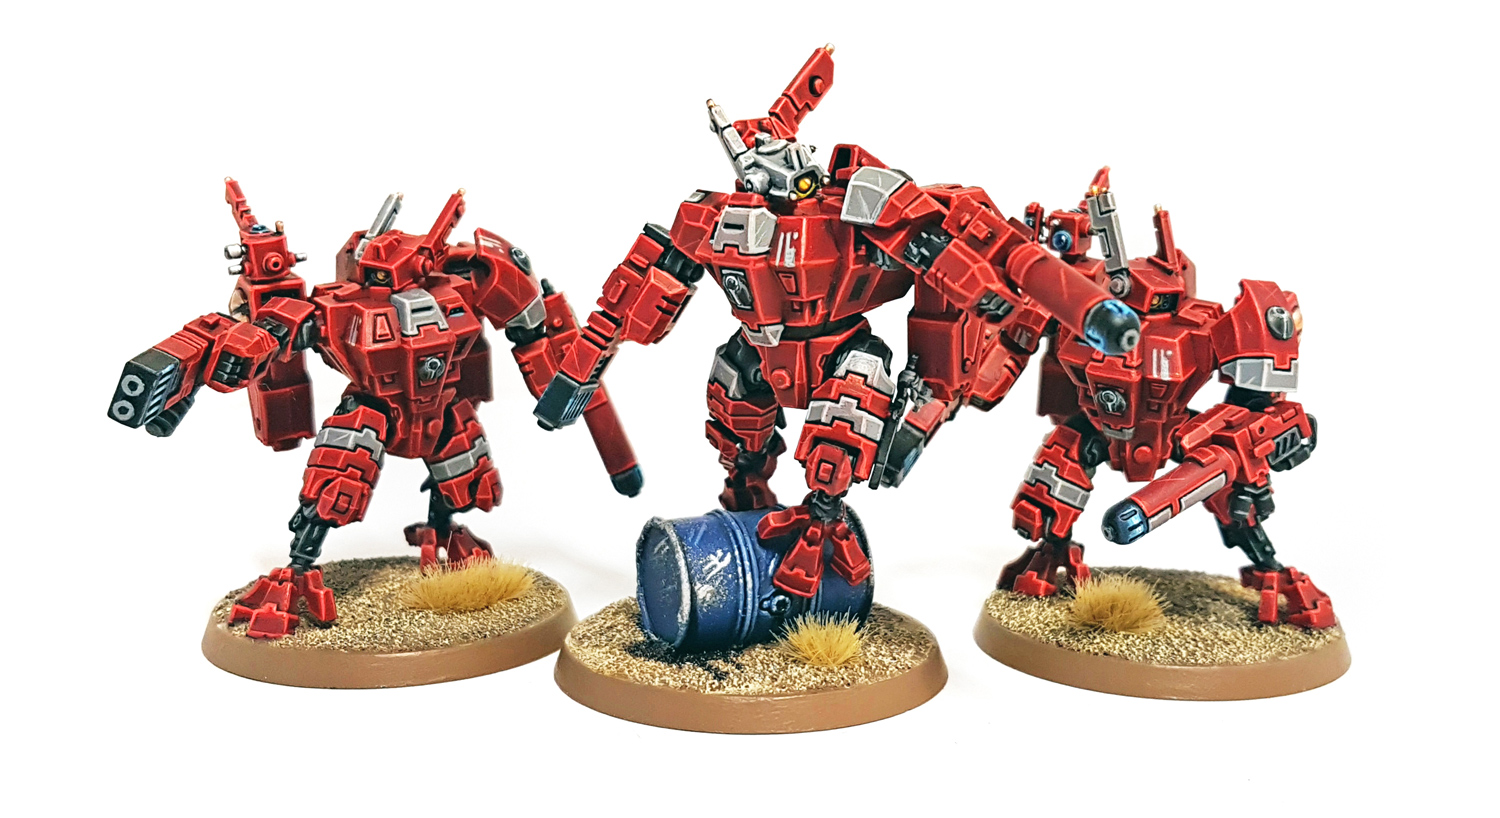 Deathhammer40k Warhammer 40,000 Commissions and Testimonials Tau Empire Project 1